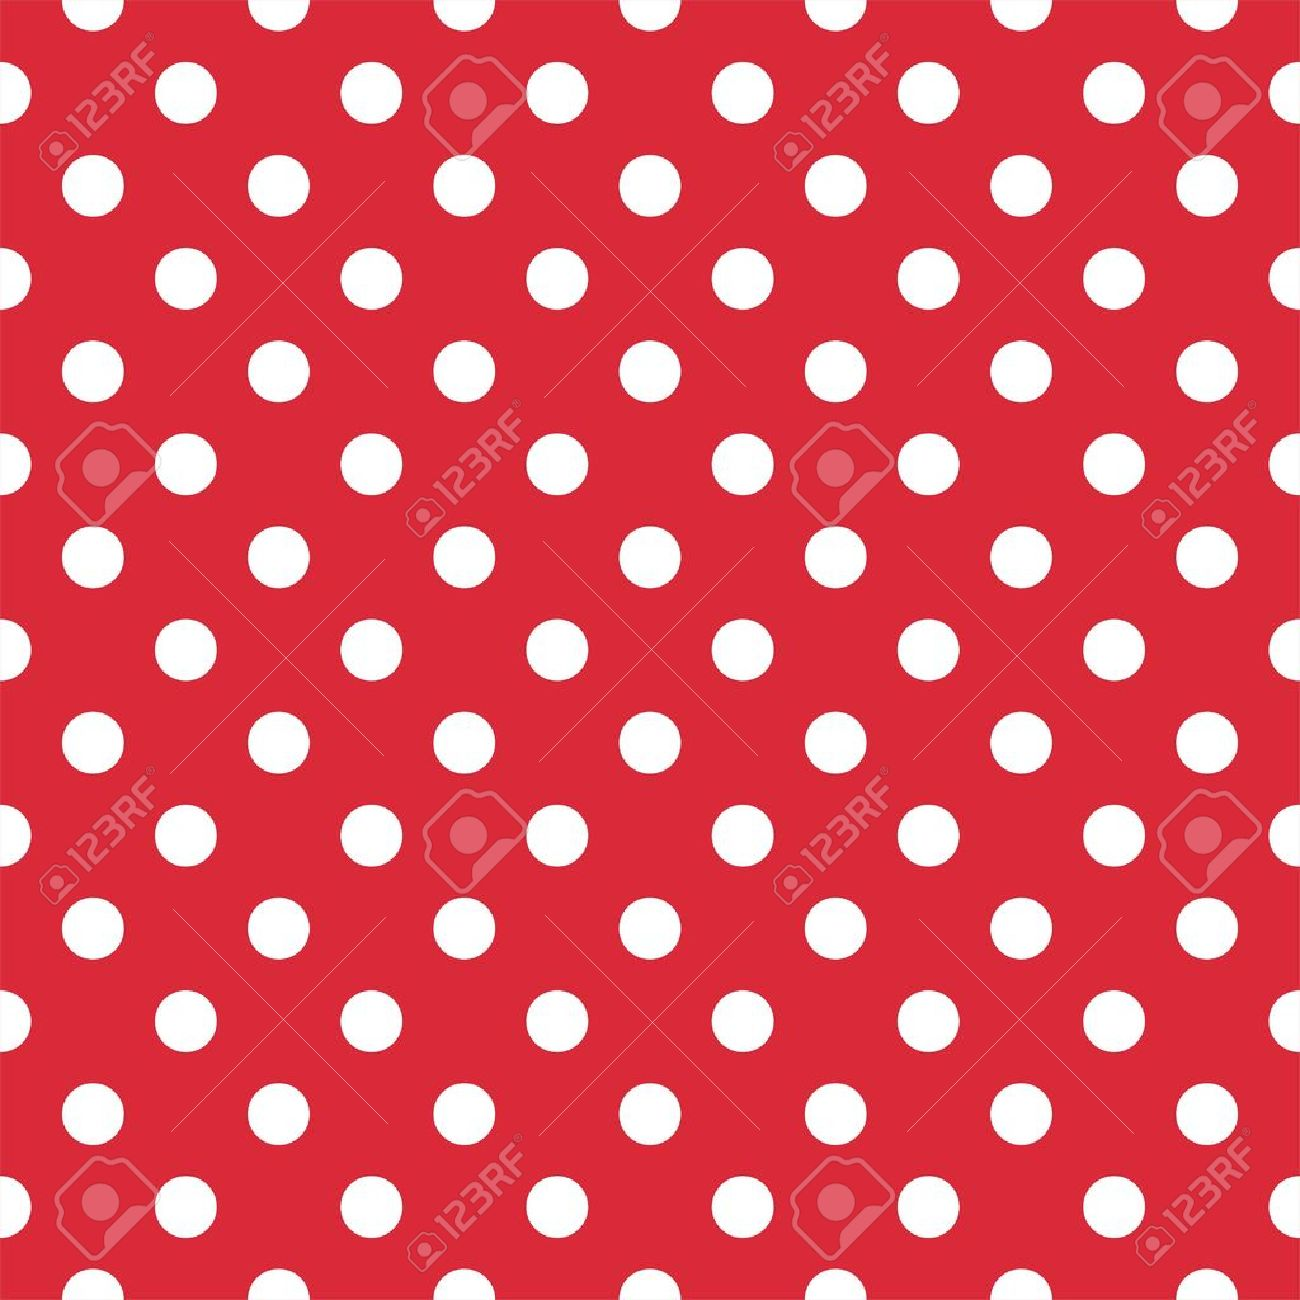 retro pattern with white polka dots on red background retro